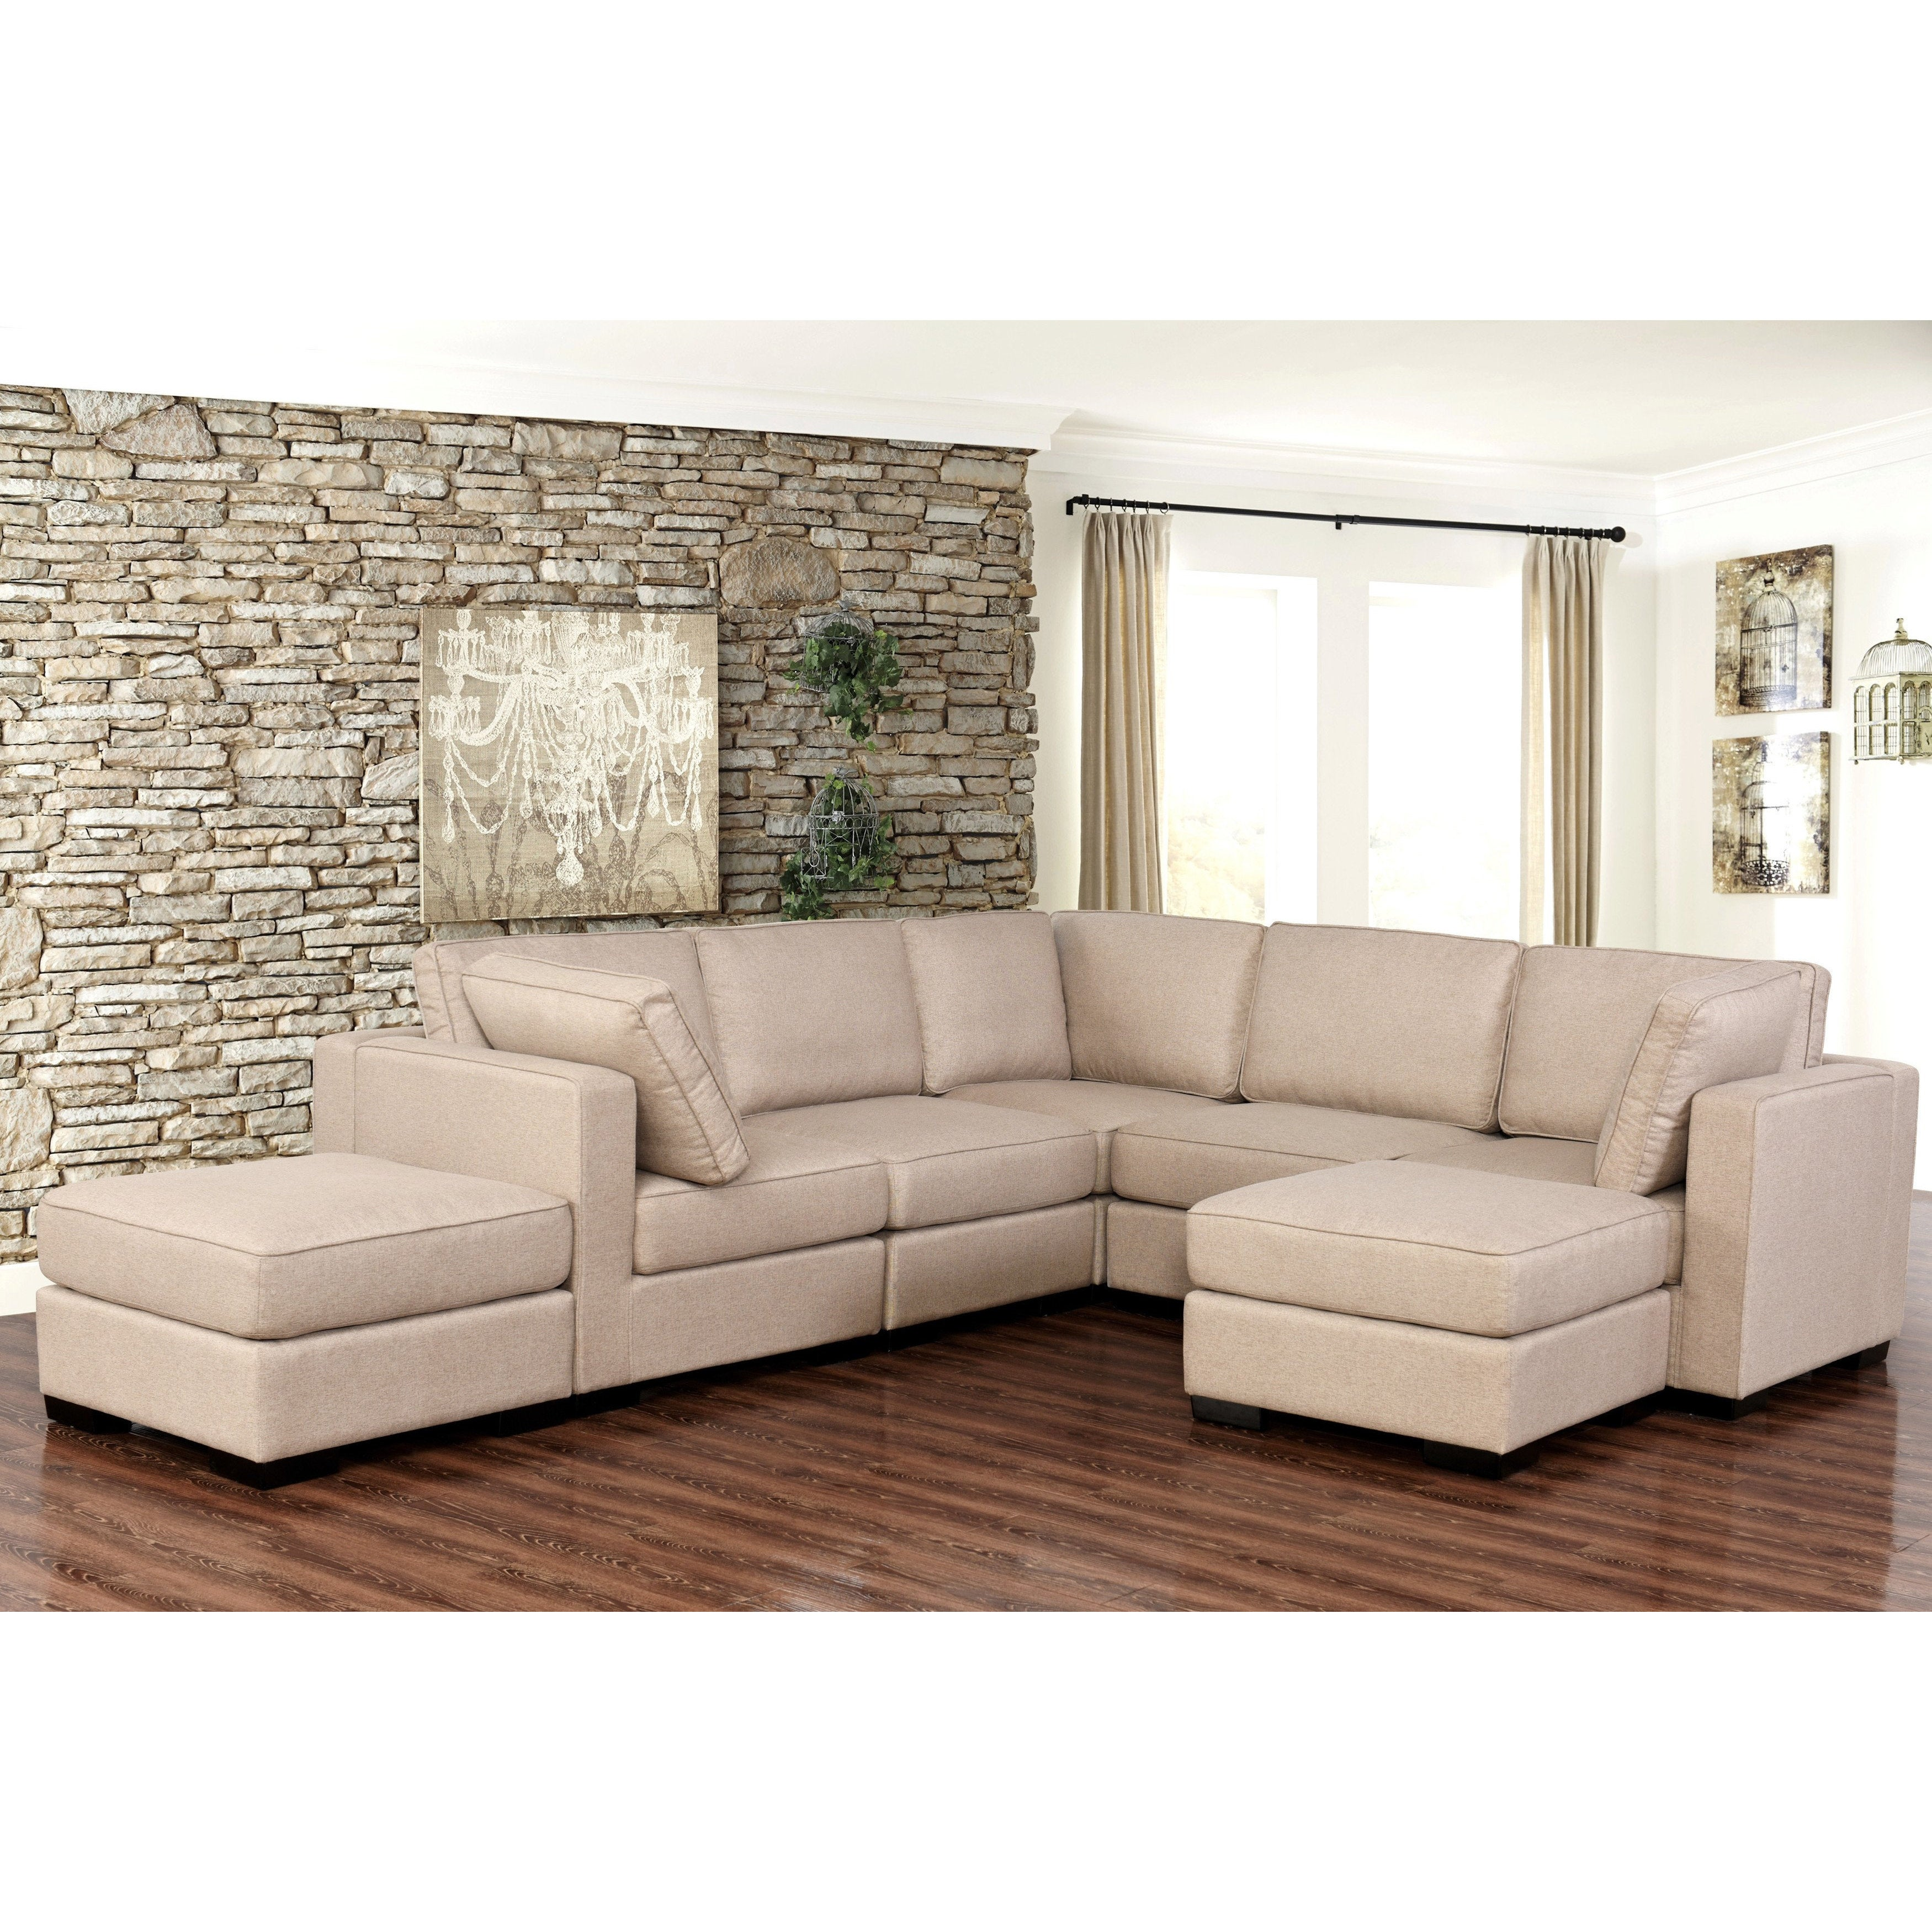 Incroyable Shop Abbyson Harper Fabric Modular 7 Piece Sectional   Free Shipping Today    Overstock.com   14458115